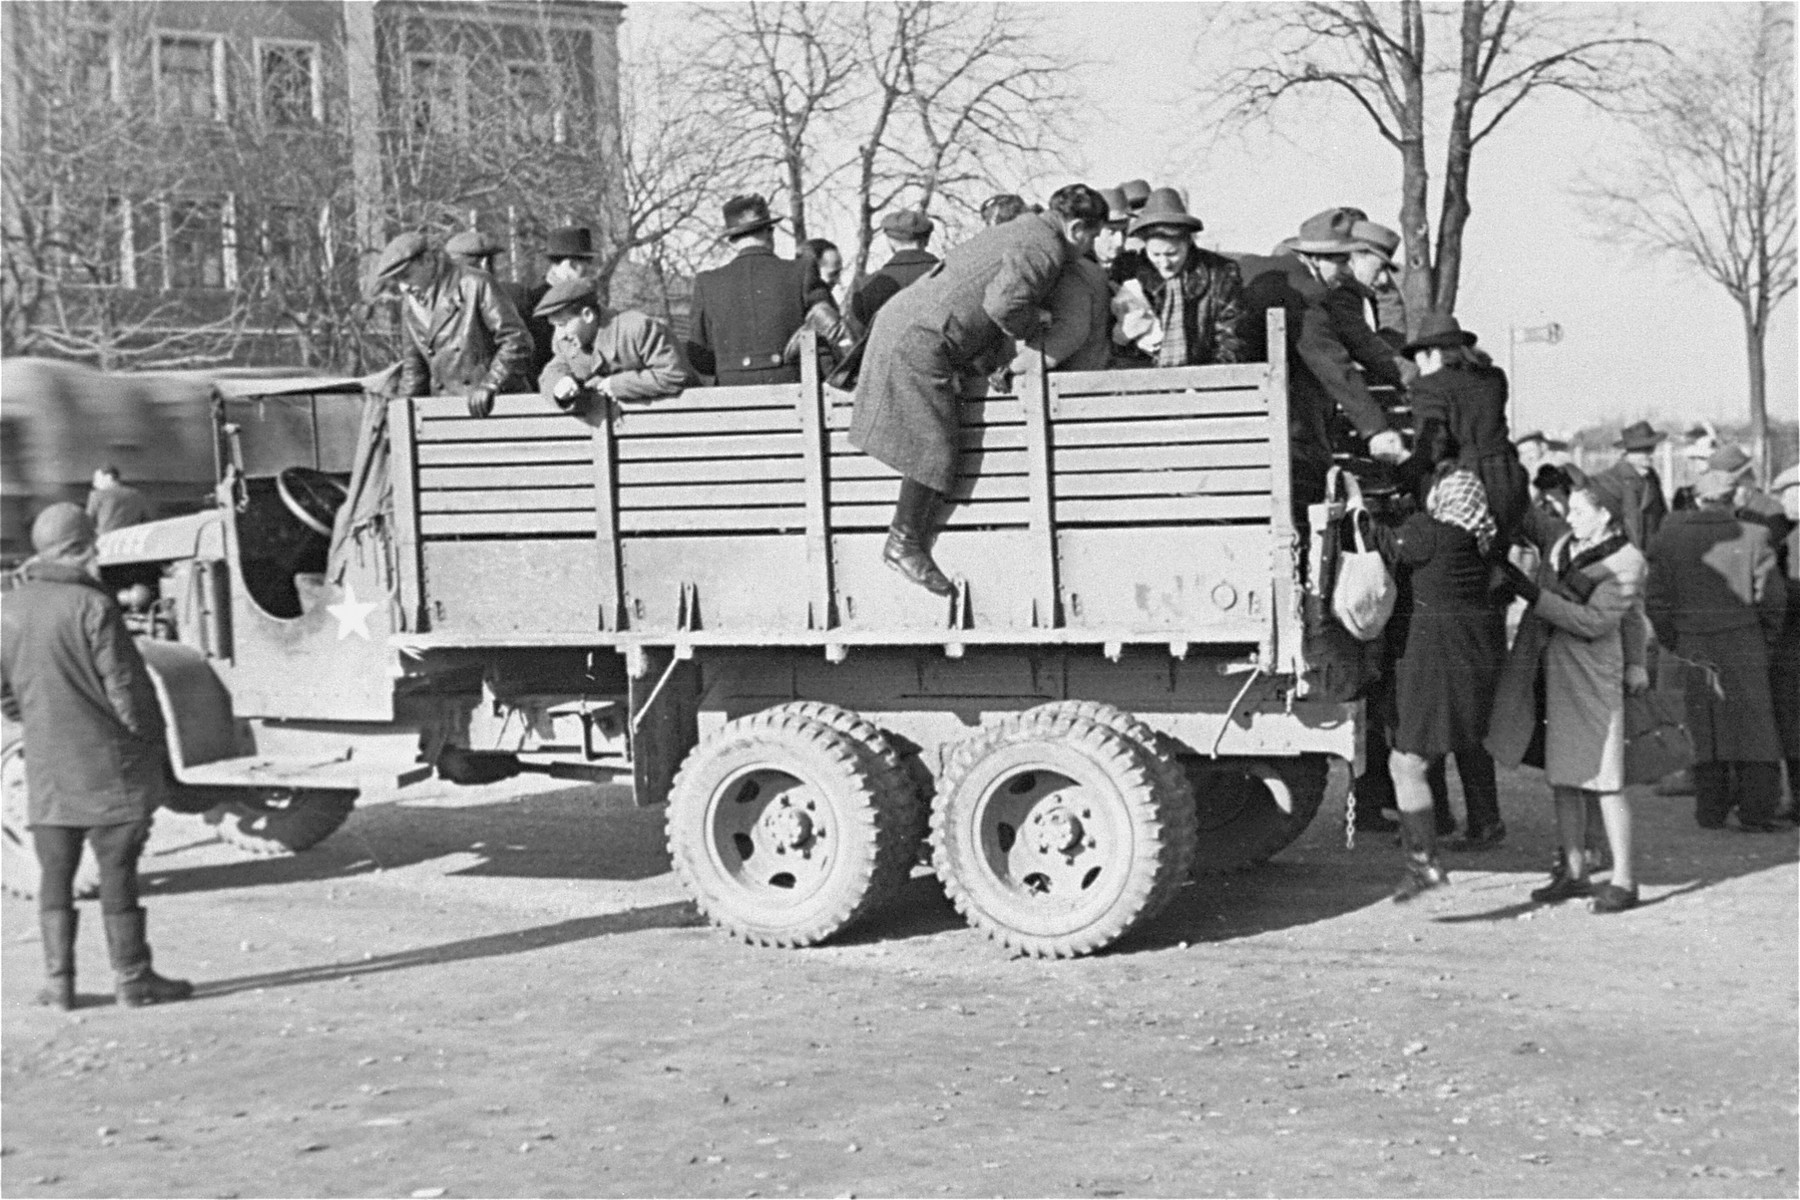 Departing Jewish DPs climb onto the back of a truck at a displaced persons camp in Germany.